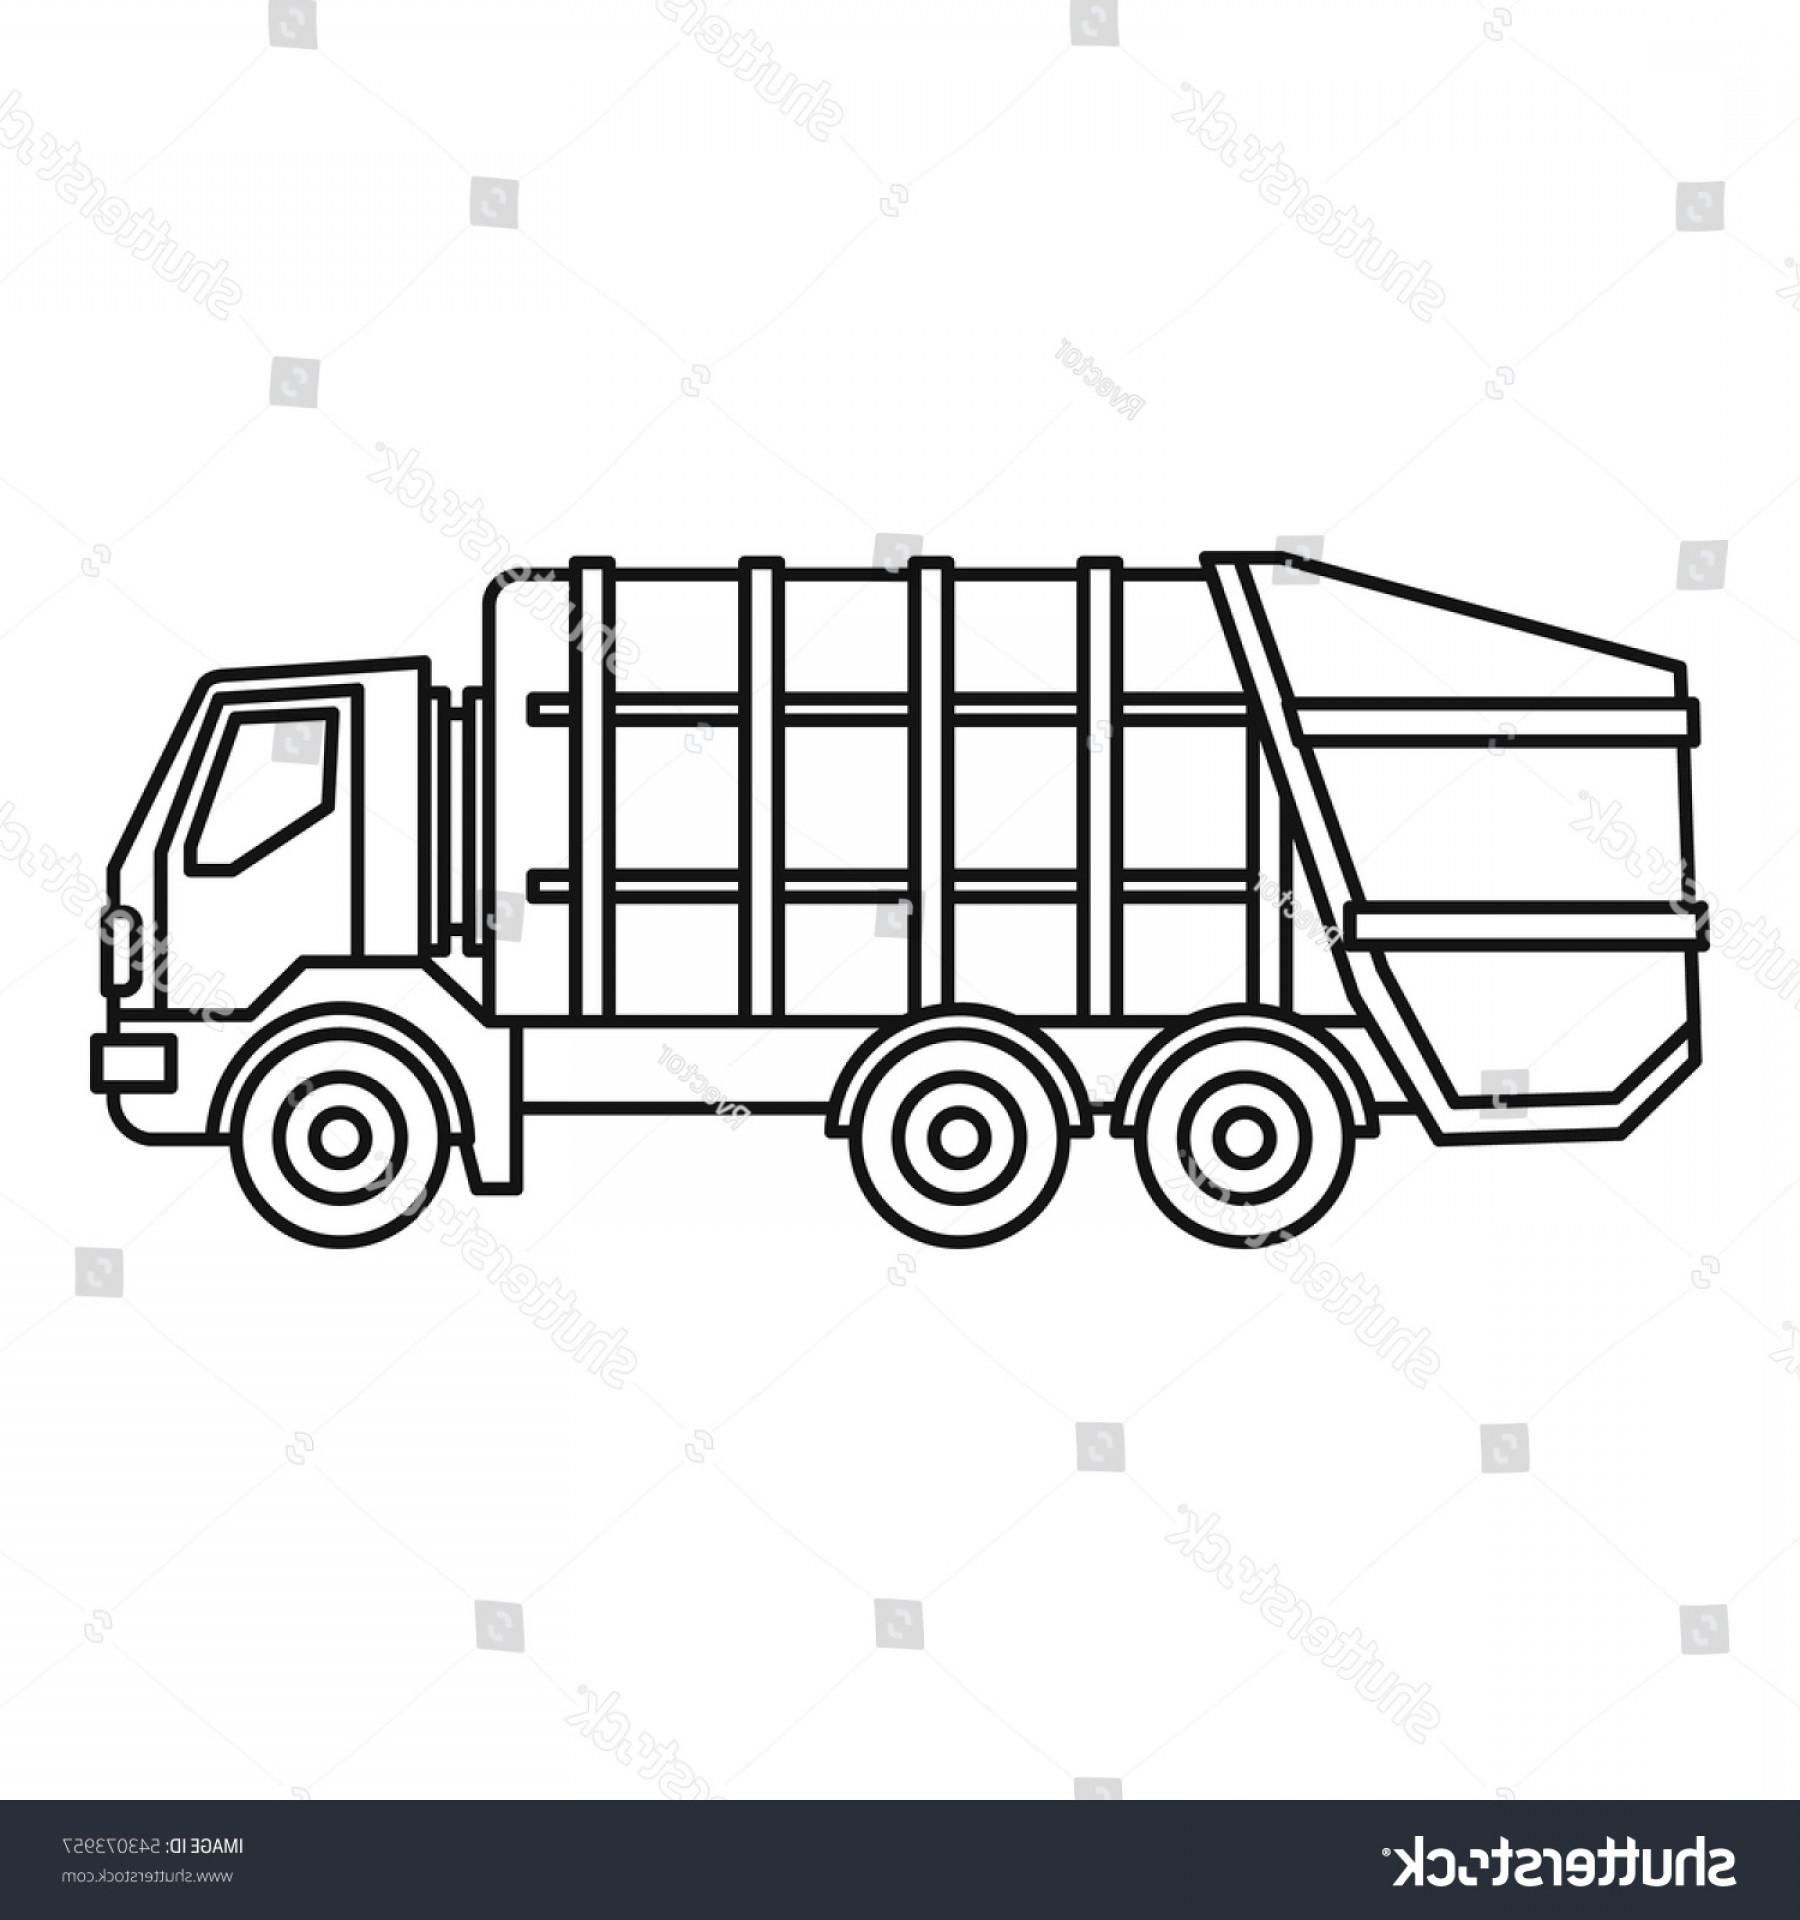 Dump Truck Vector Black And White: Garbage Truck Icon Outline Illustration Vector